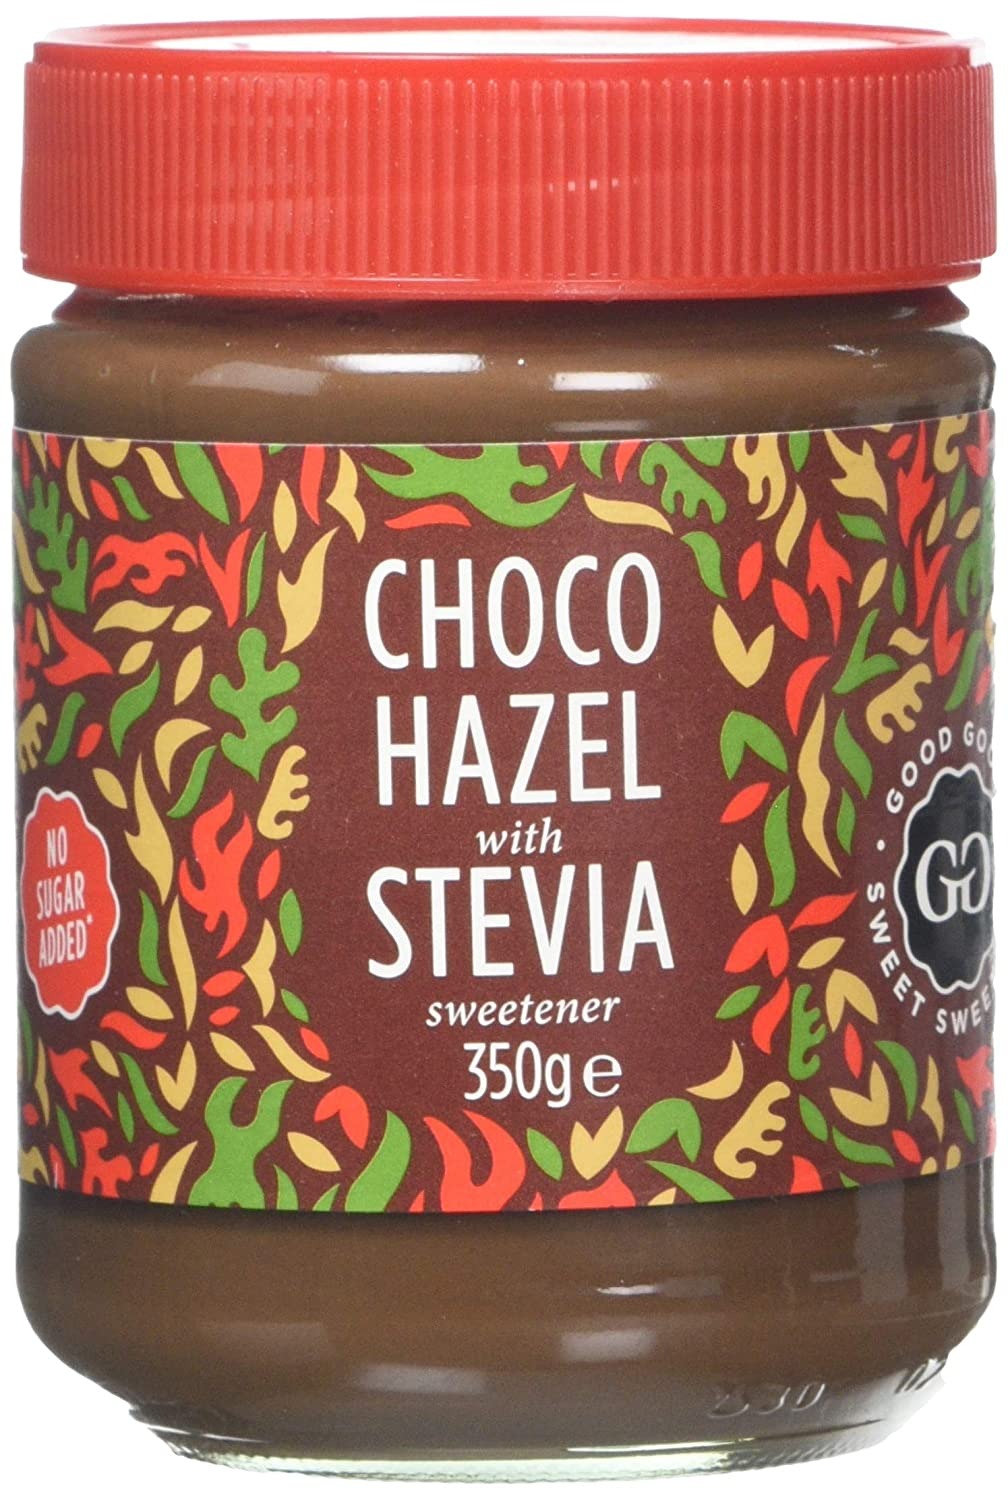 Choco Hazel With Stevia 350g No Added Sugar A Healthy And Delicious Option For Those Who Love Chocolate Spreads